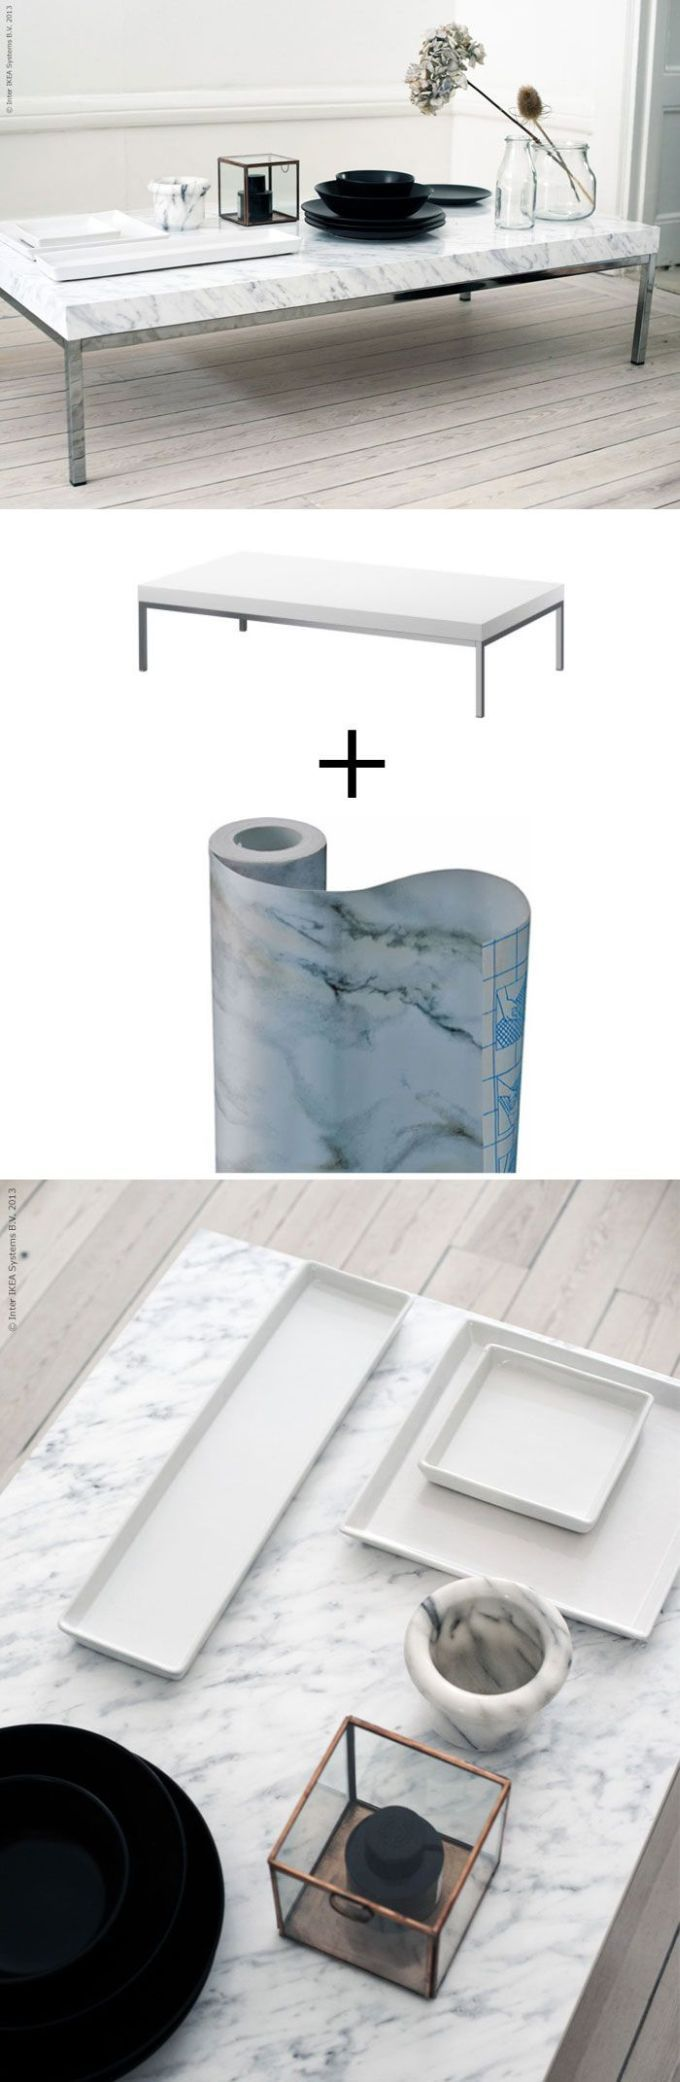 Marble Contact + Ikea Table